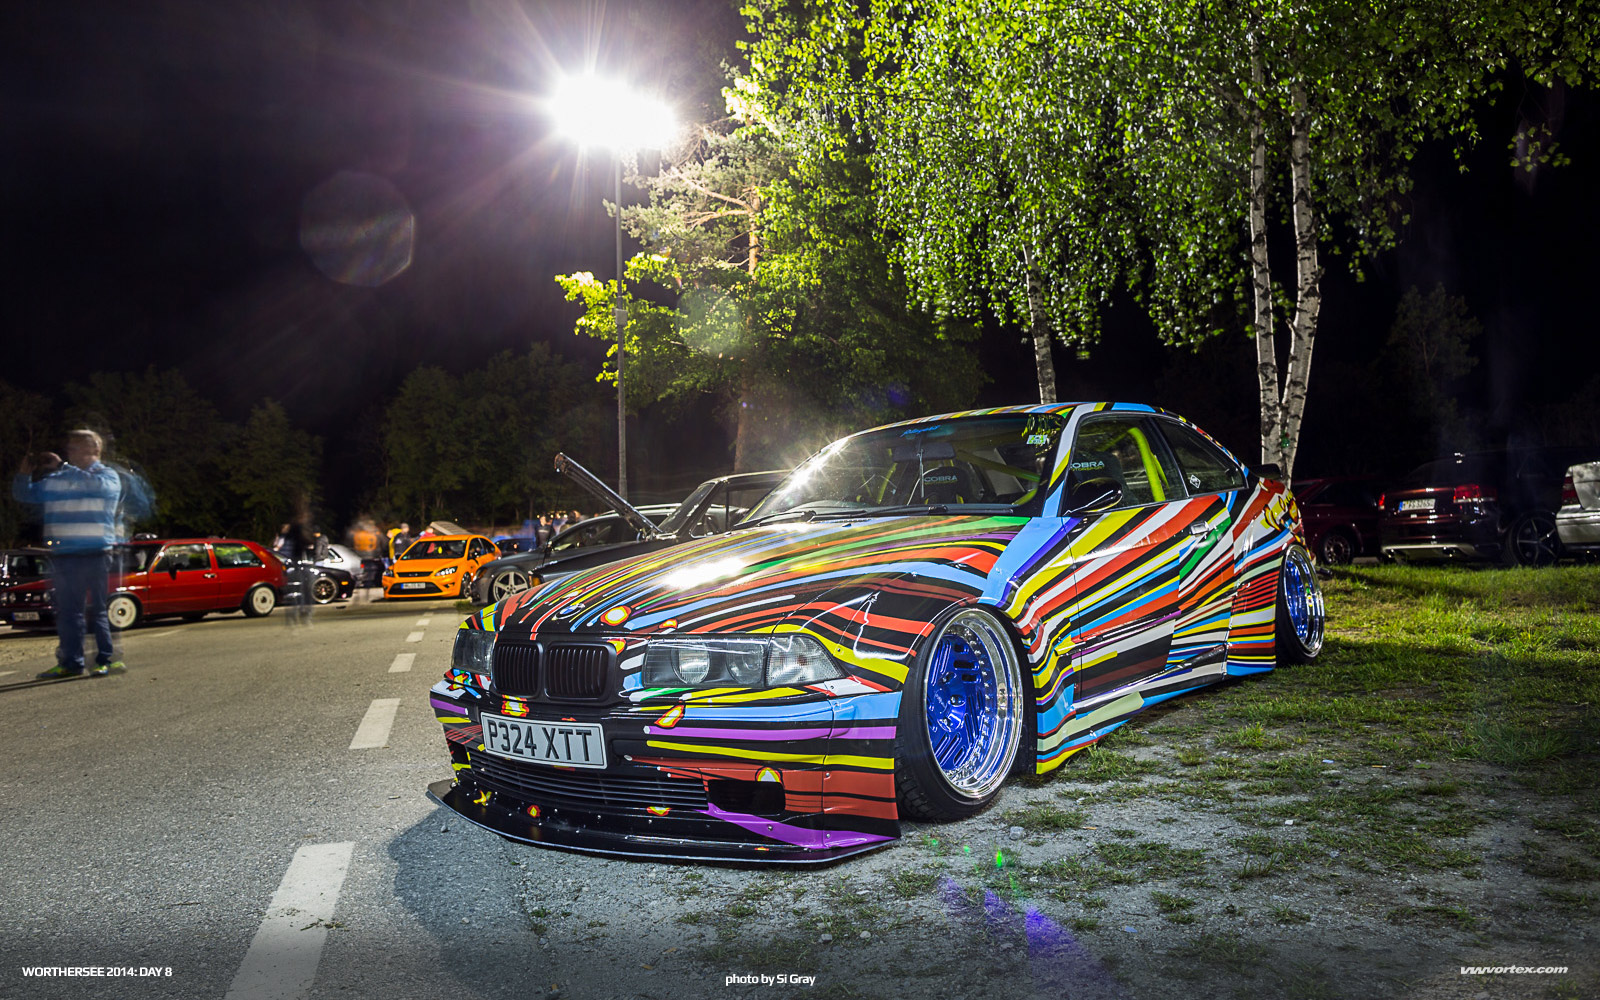 2014-Worthersee-Day-8-Si-Gray-1129